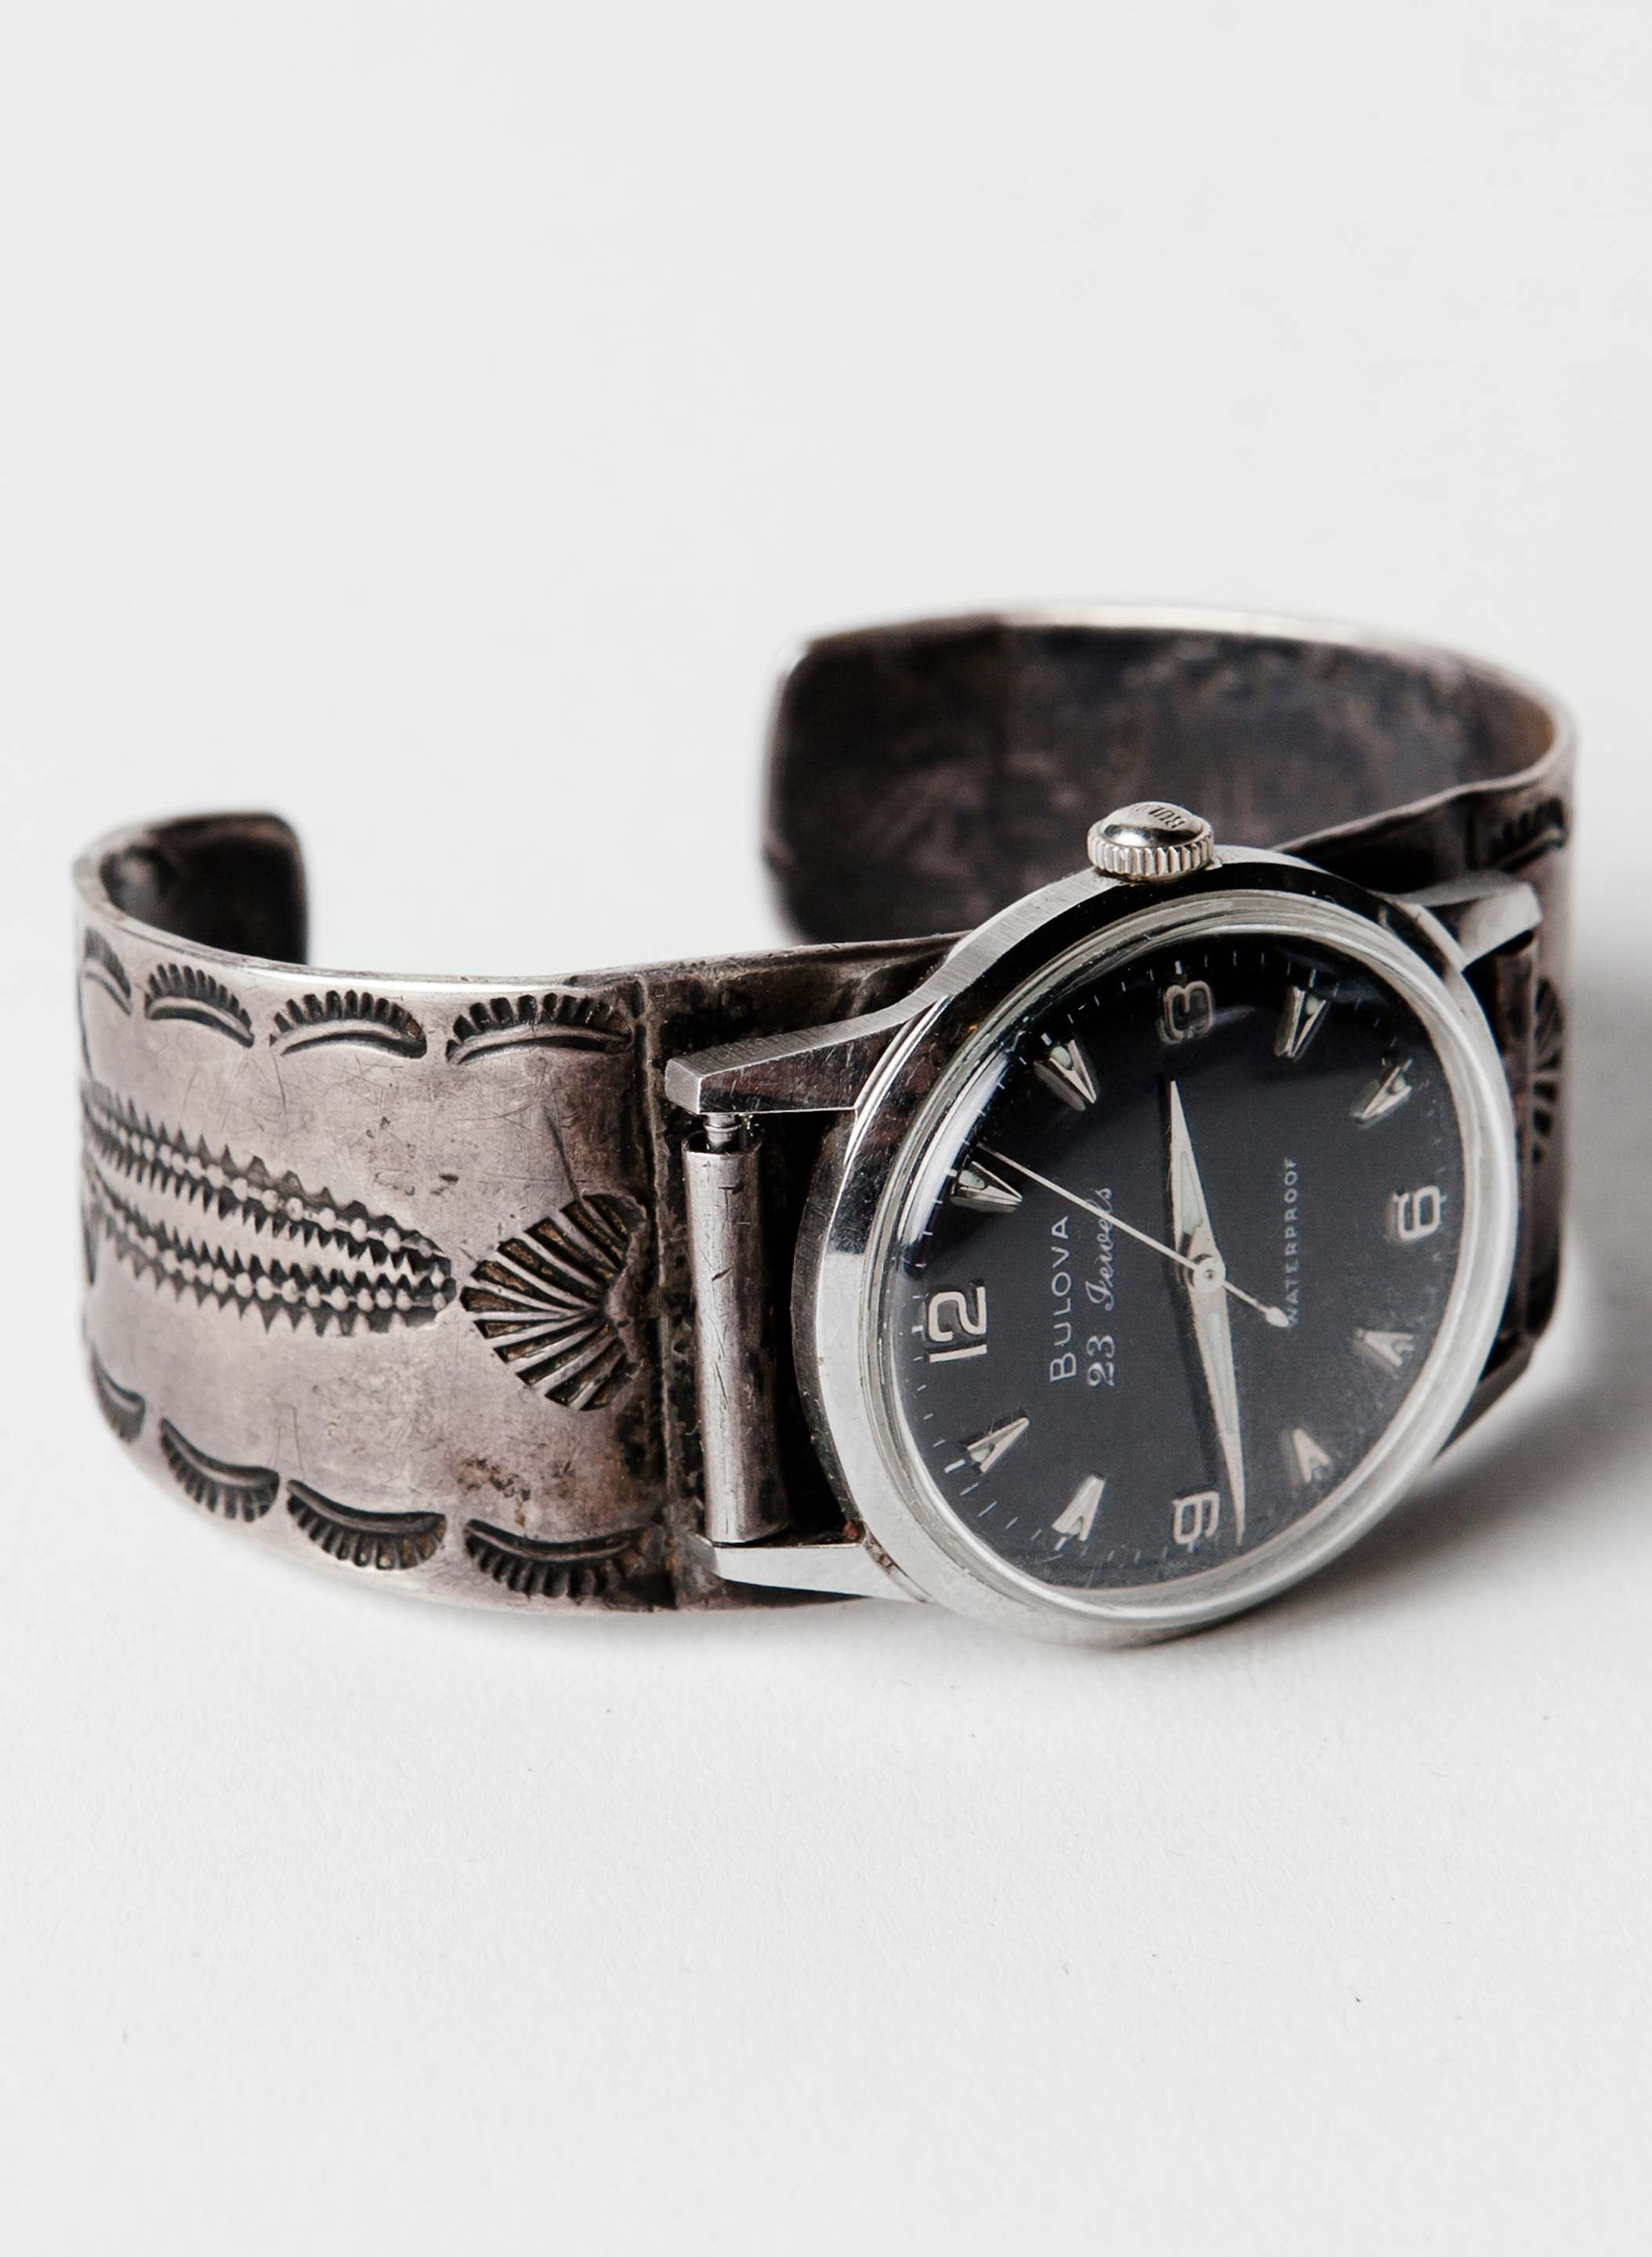 imogene + willie - vintage stamped silver watch cuff